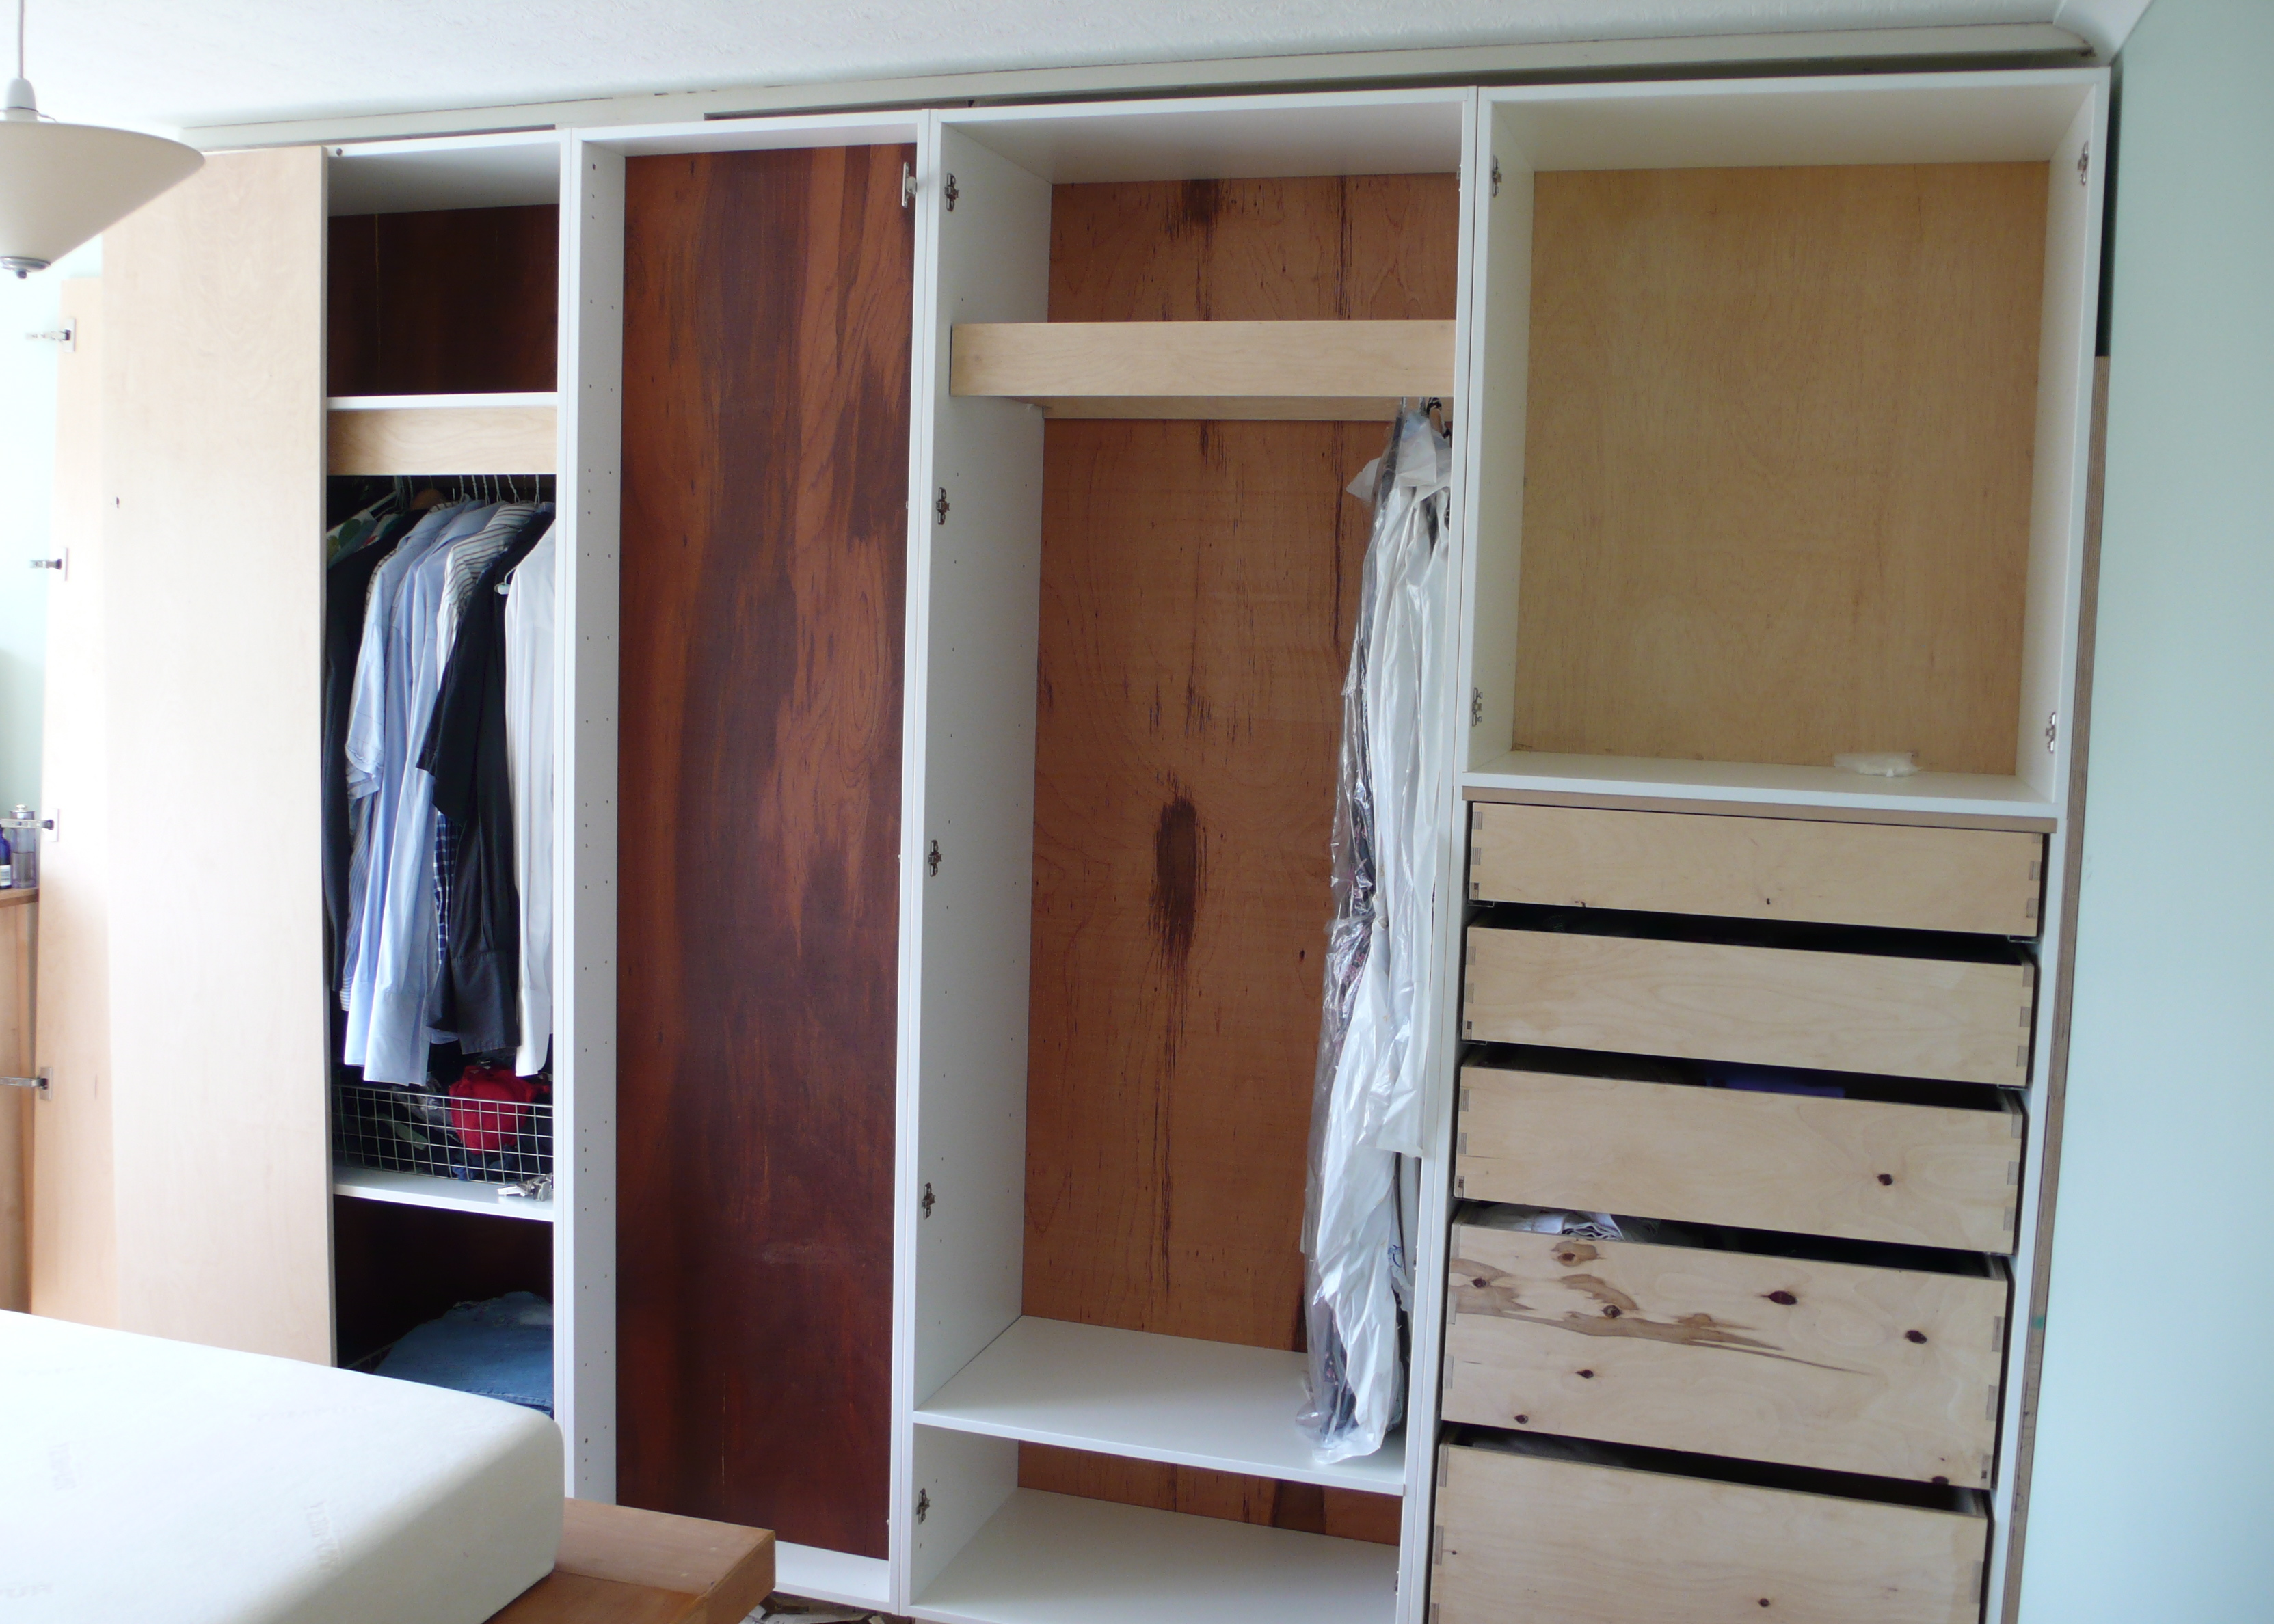 Bedroom cabinet doors bedroom wardrobe built around chimney breast diy wardrobes information Build your own bedroom wardrobes